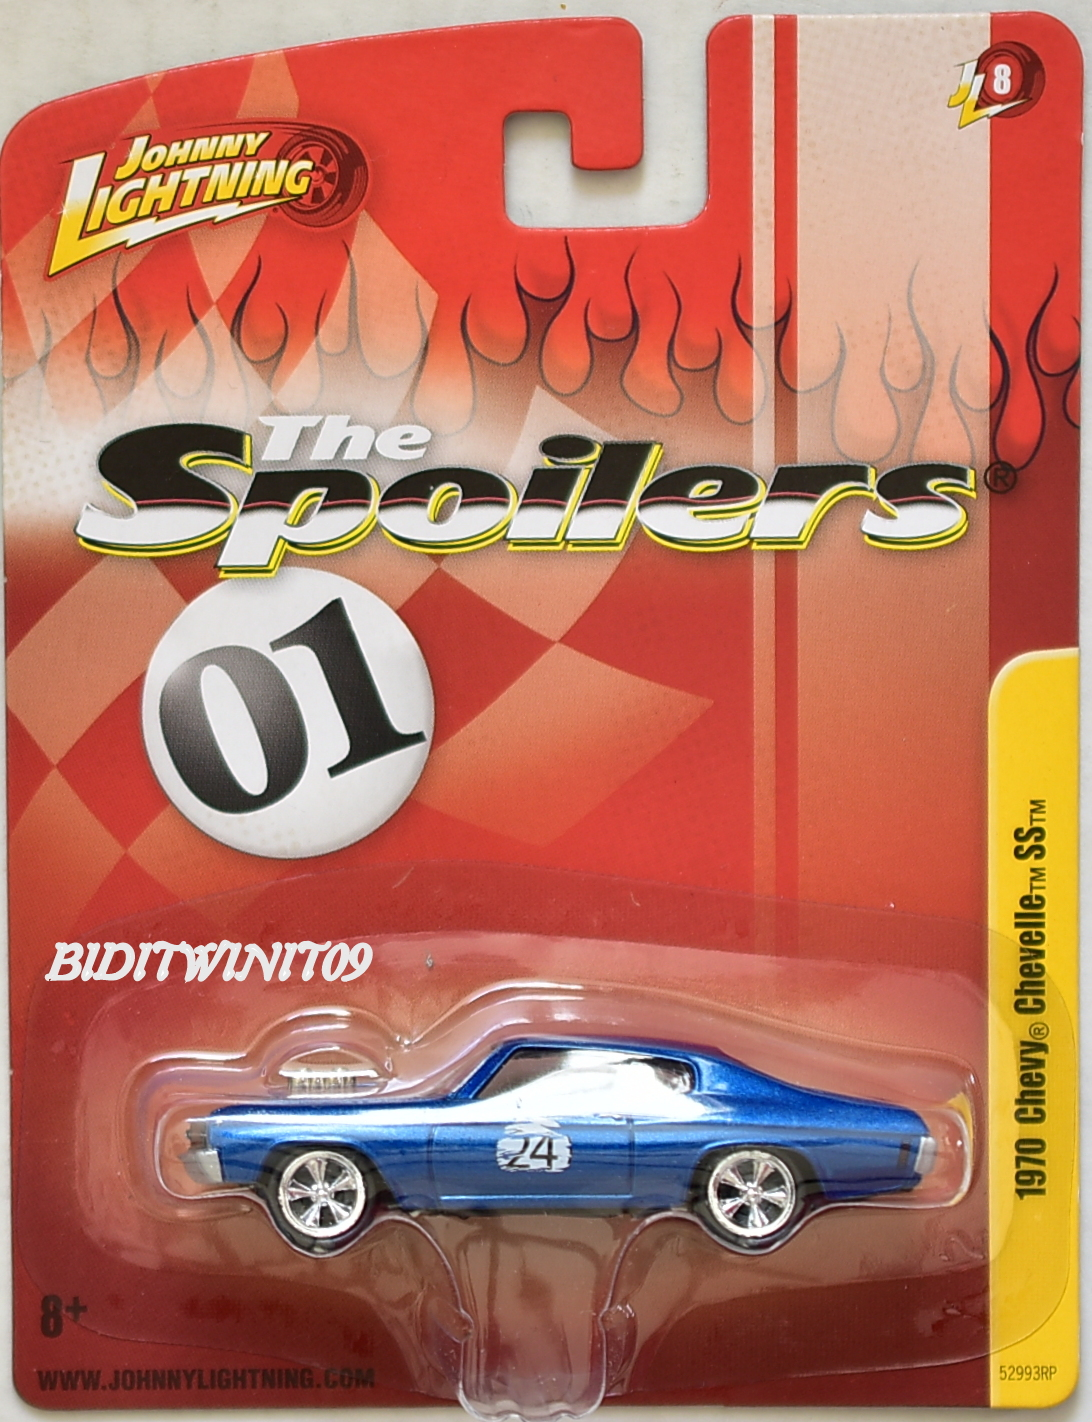 JOHNNY LIGHTNING 1970 CHEVY CHEVELLE SS JL8 BLUE THE SPOILERS 01